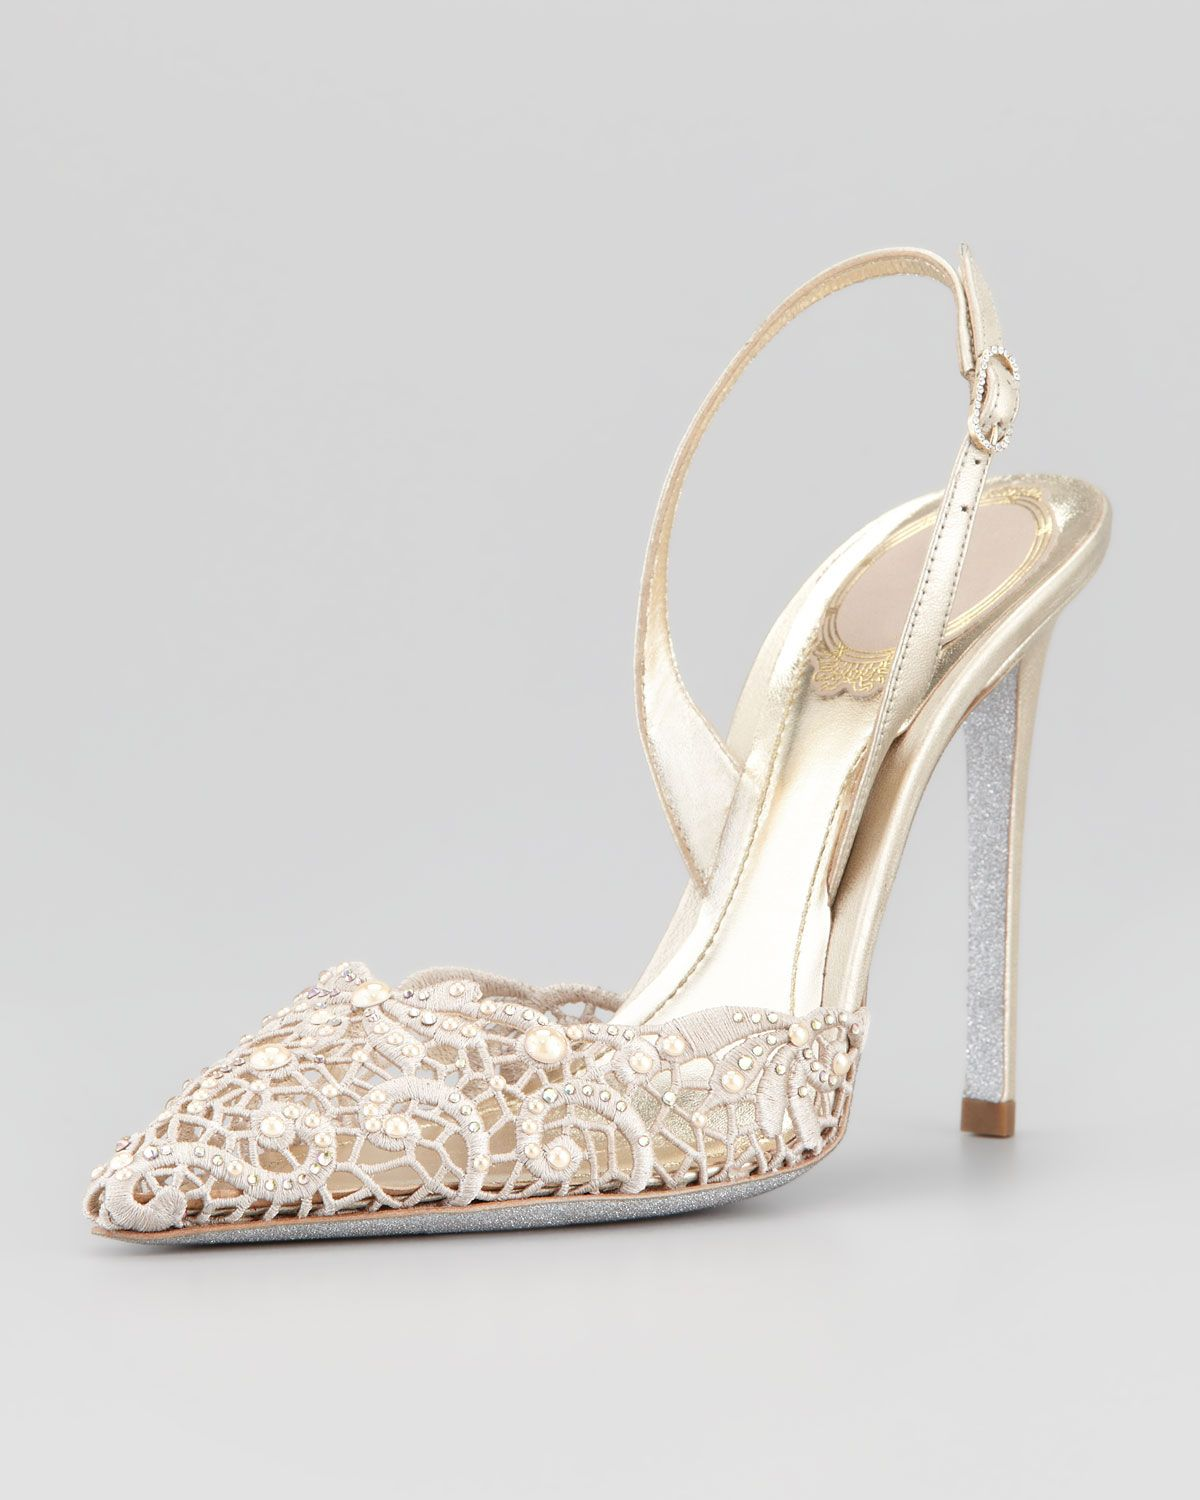 sale low cost René Caovilla pointed sandals fake online cheapest price for sale outlet 2014 new jIfMyK0p